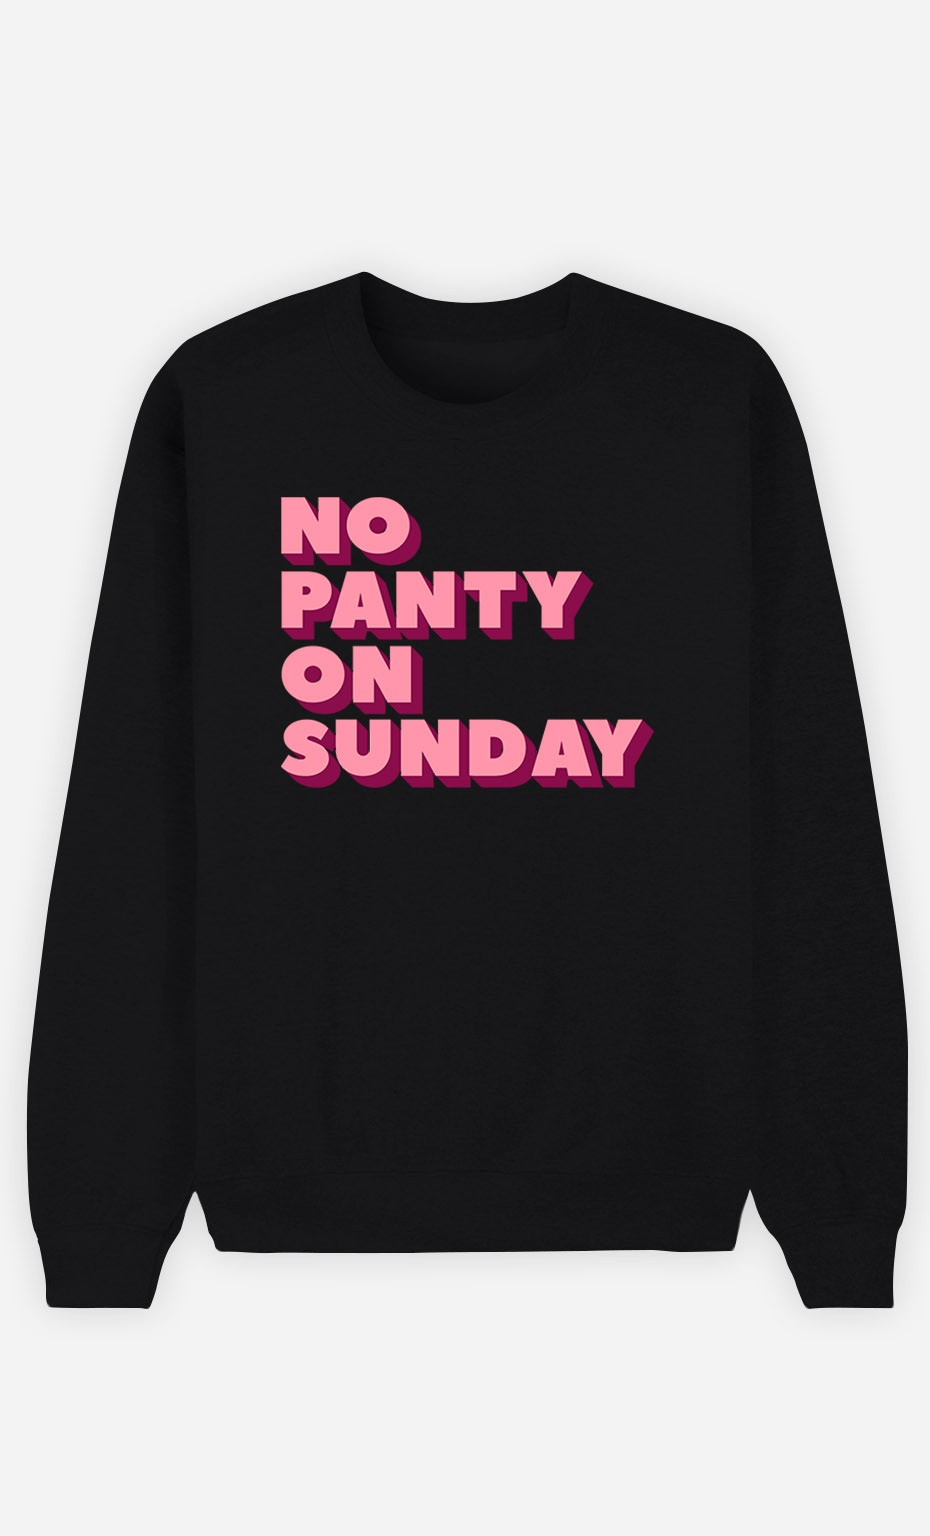 Black Sweatshirt No Panty on Sunday